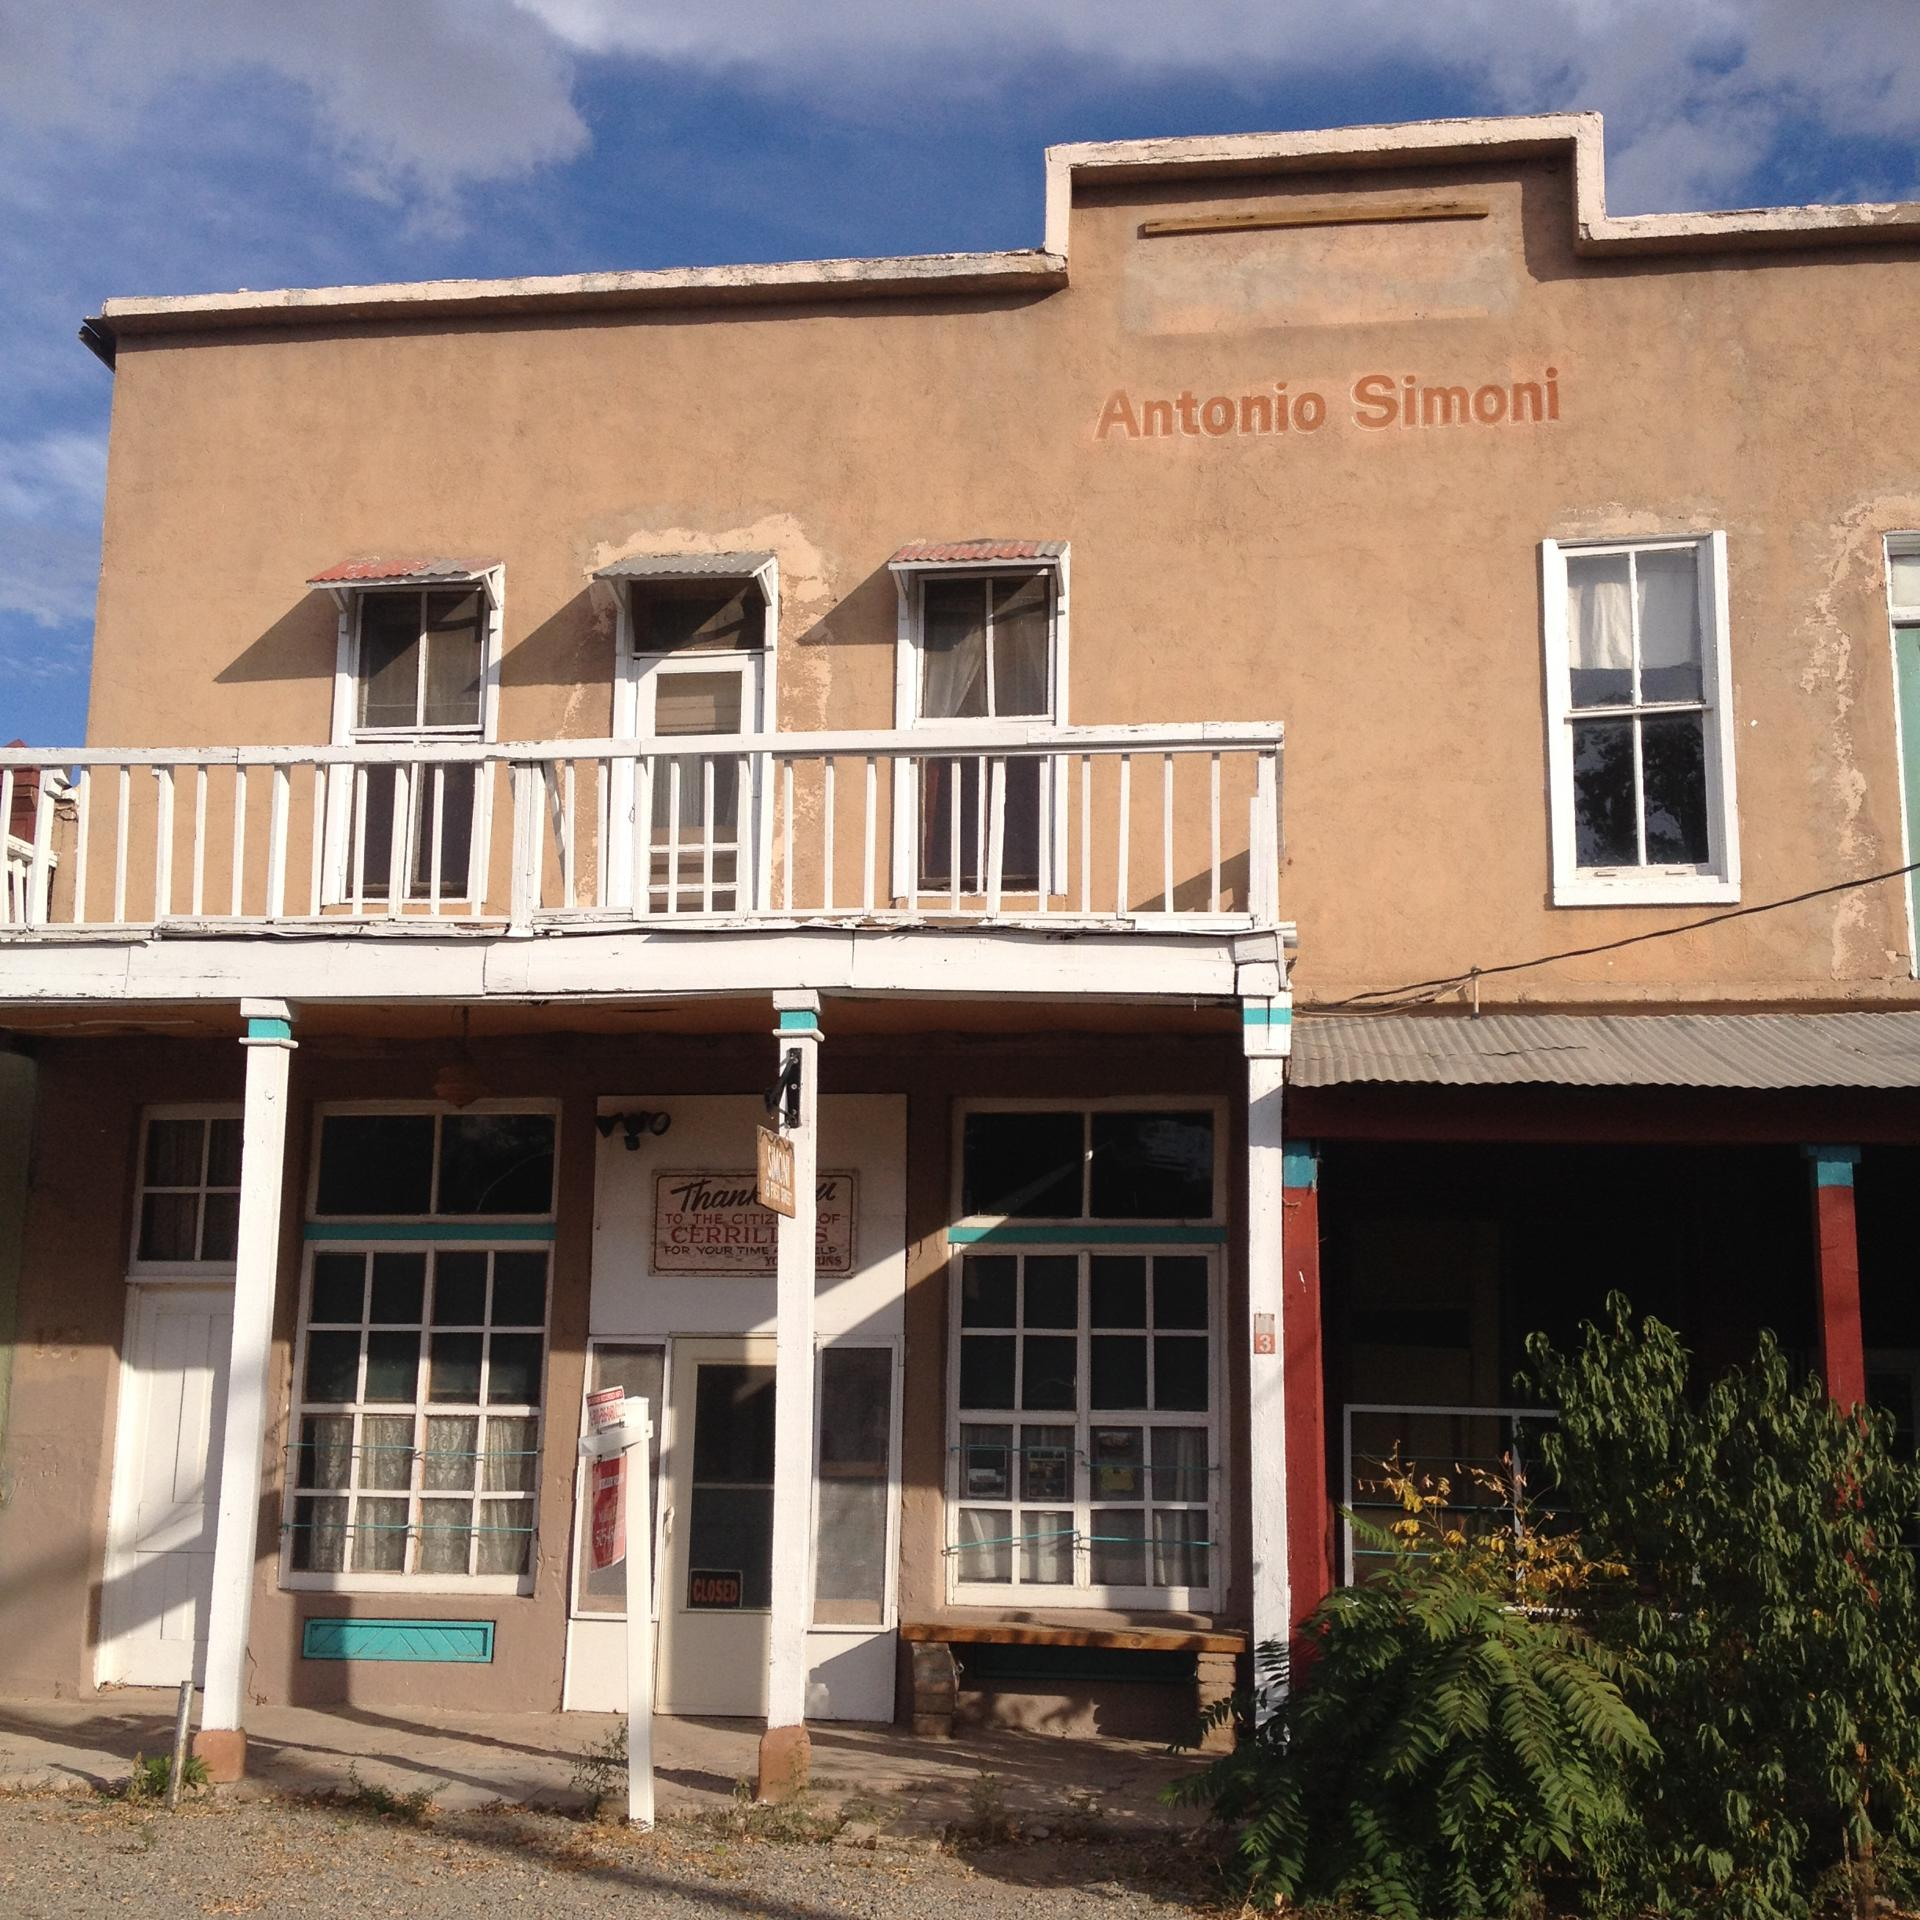 Downtown Cerrillos can resemble a quaint ghost town.